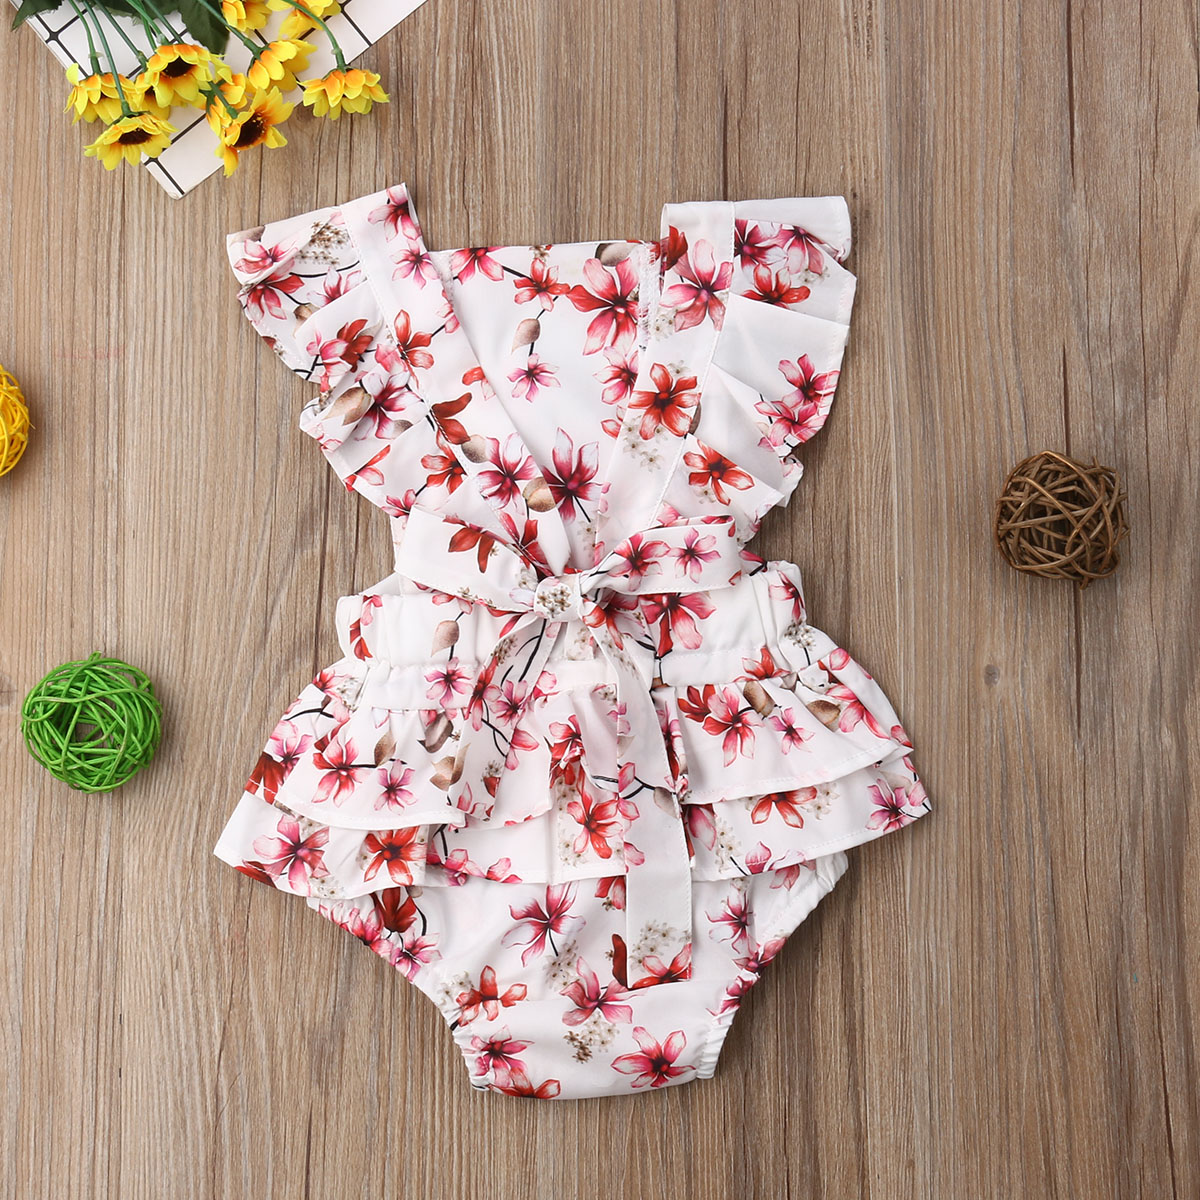 M Newborn Infant Baby Girl Flower Lace Clothes Flutter Sleeve Patchwork Bubble Jumpsuit Romper One